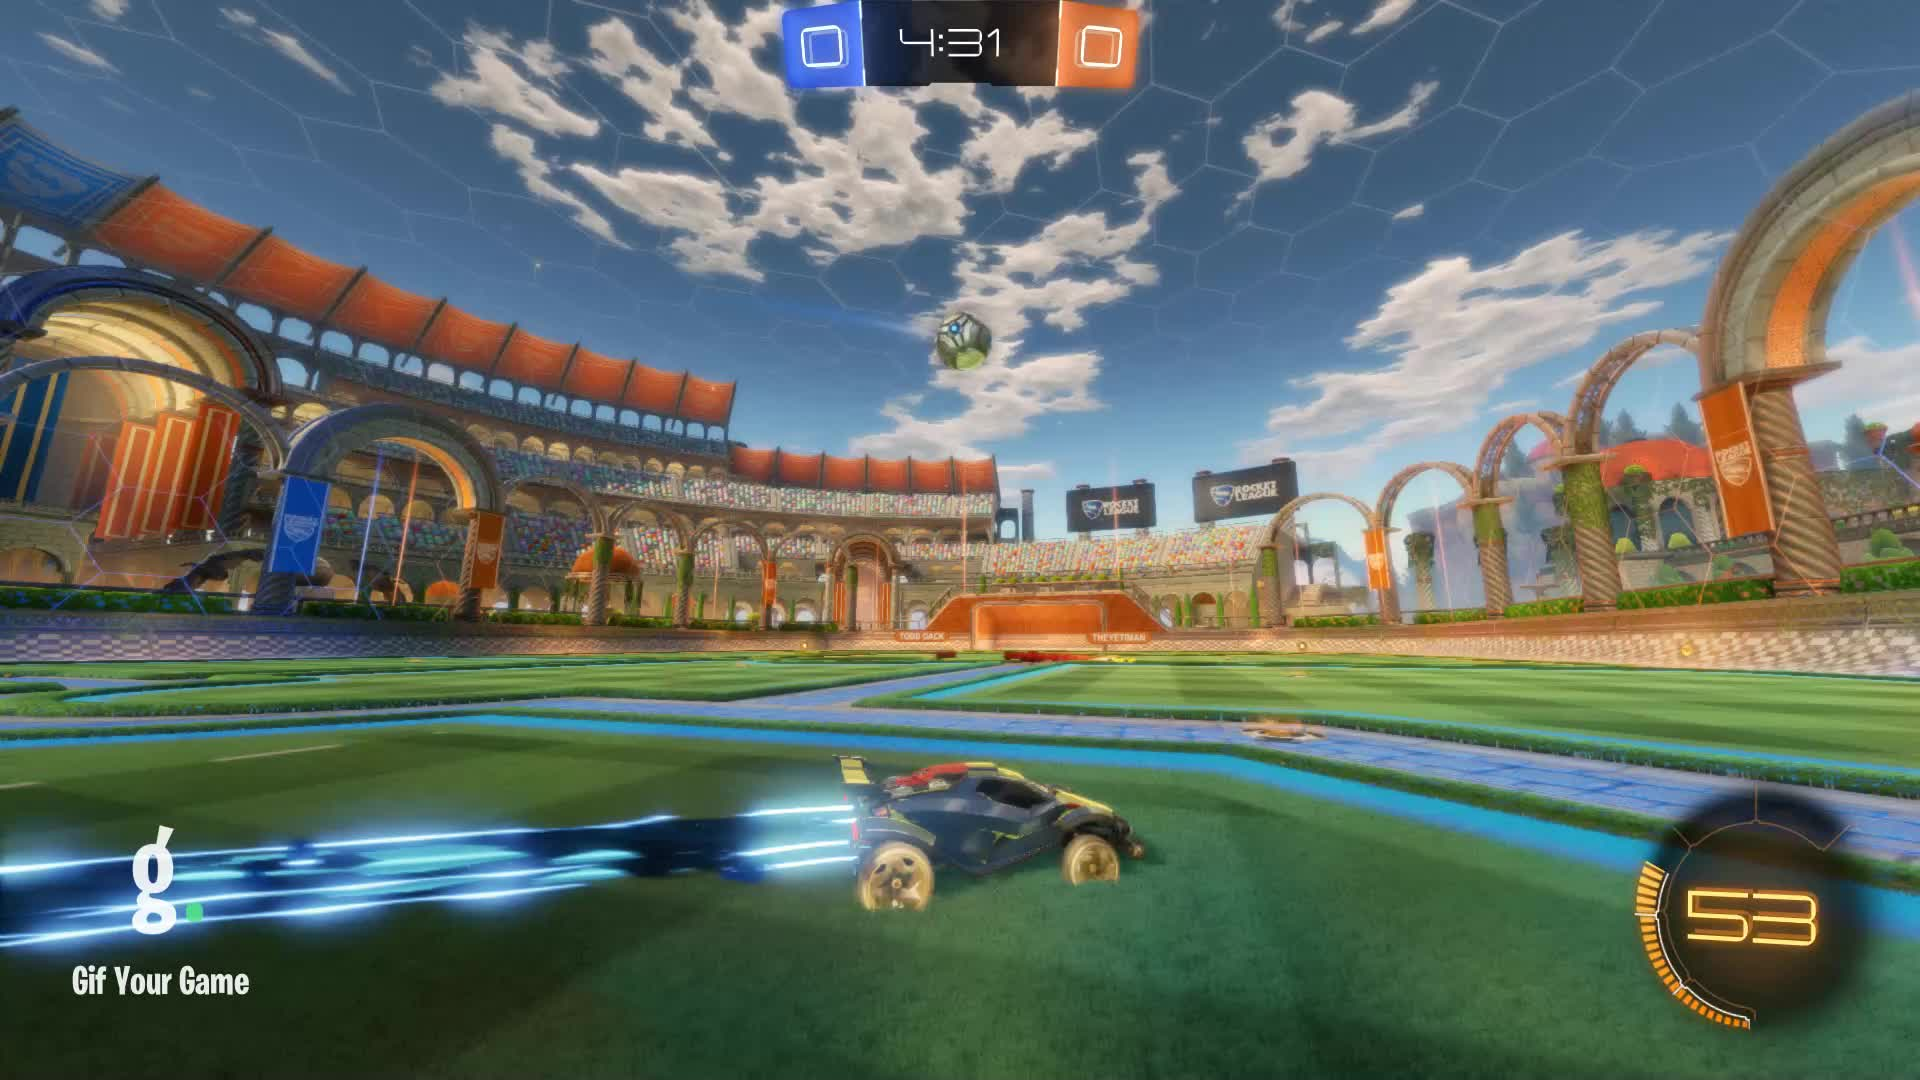 Assist, Gif Your Game, GifYourGame, ItWas...Justified, Rocket League, RocketLeague, Assist 1: ItWas...Justified GIFs